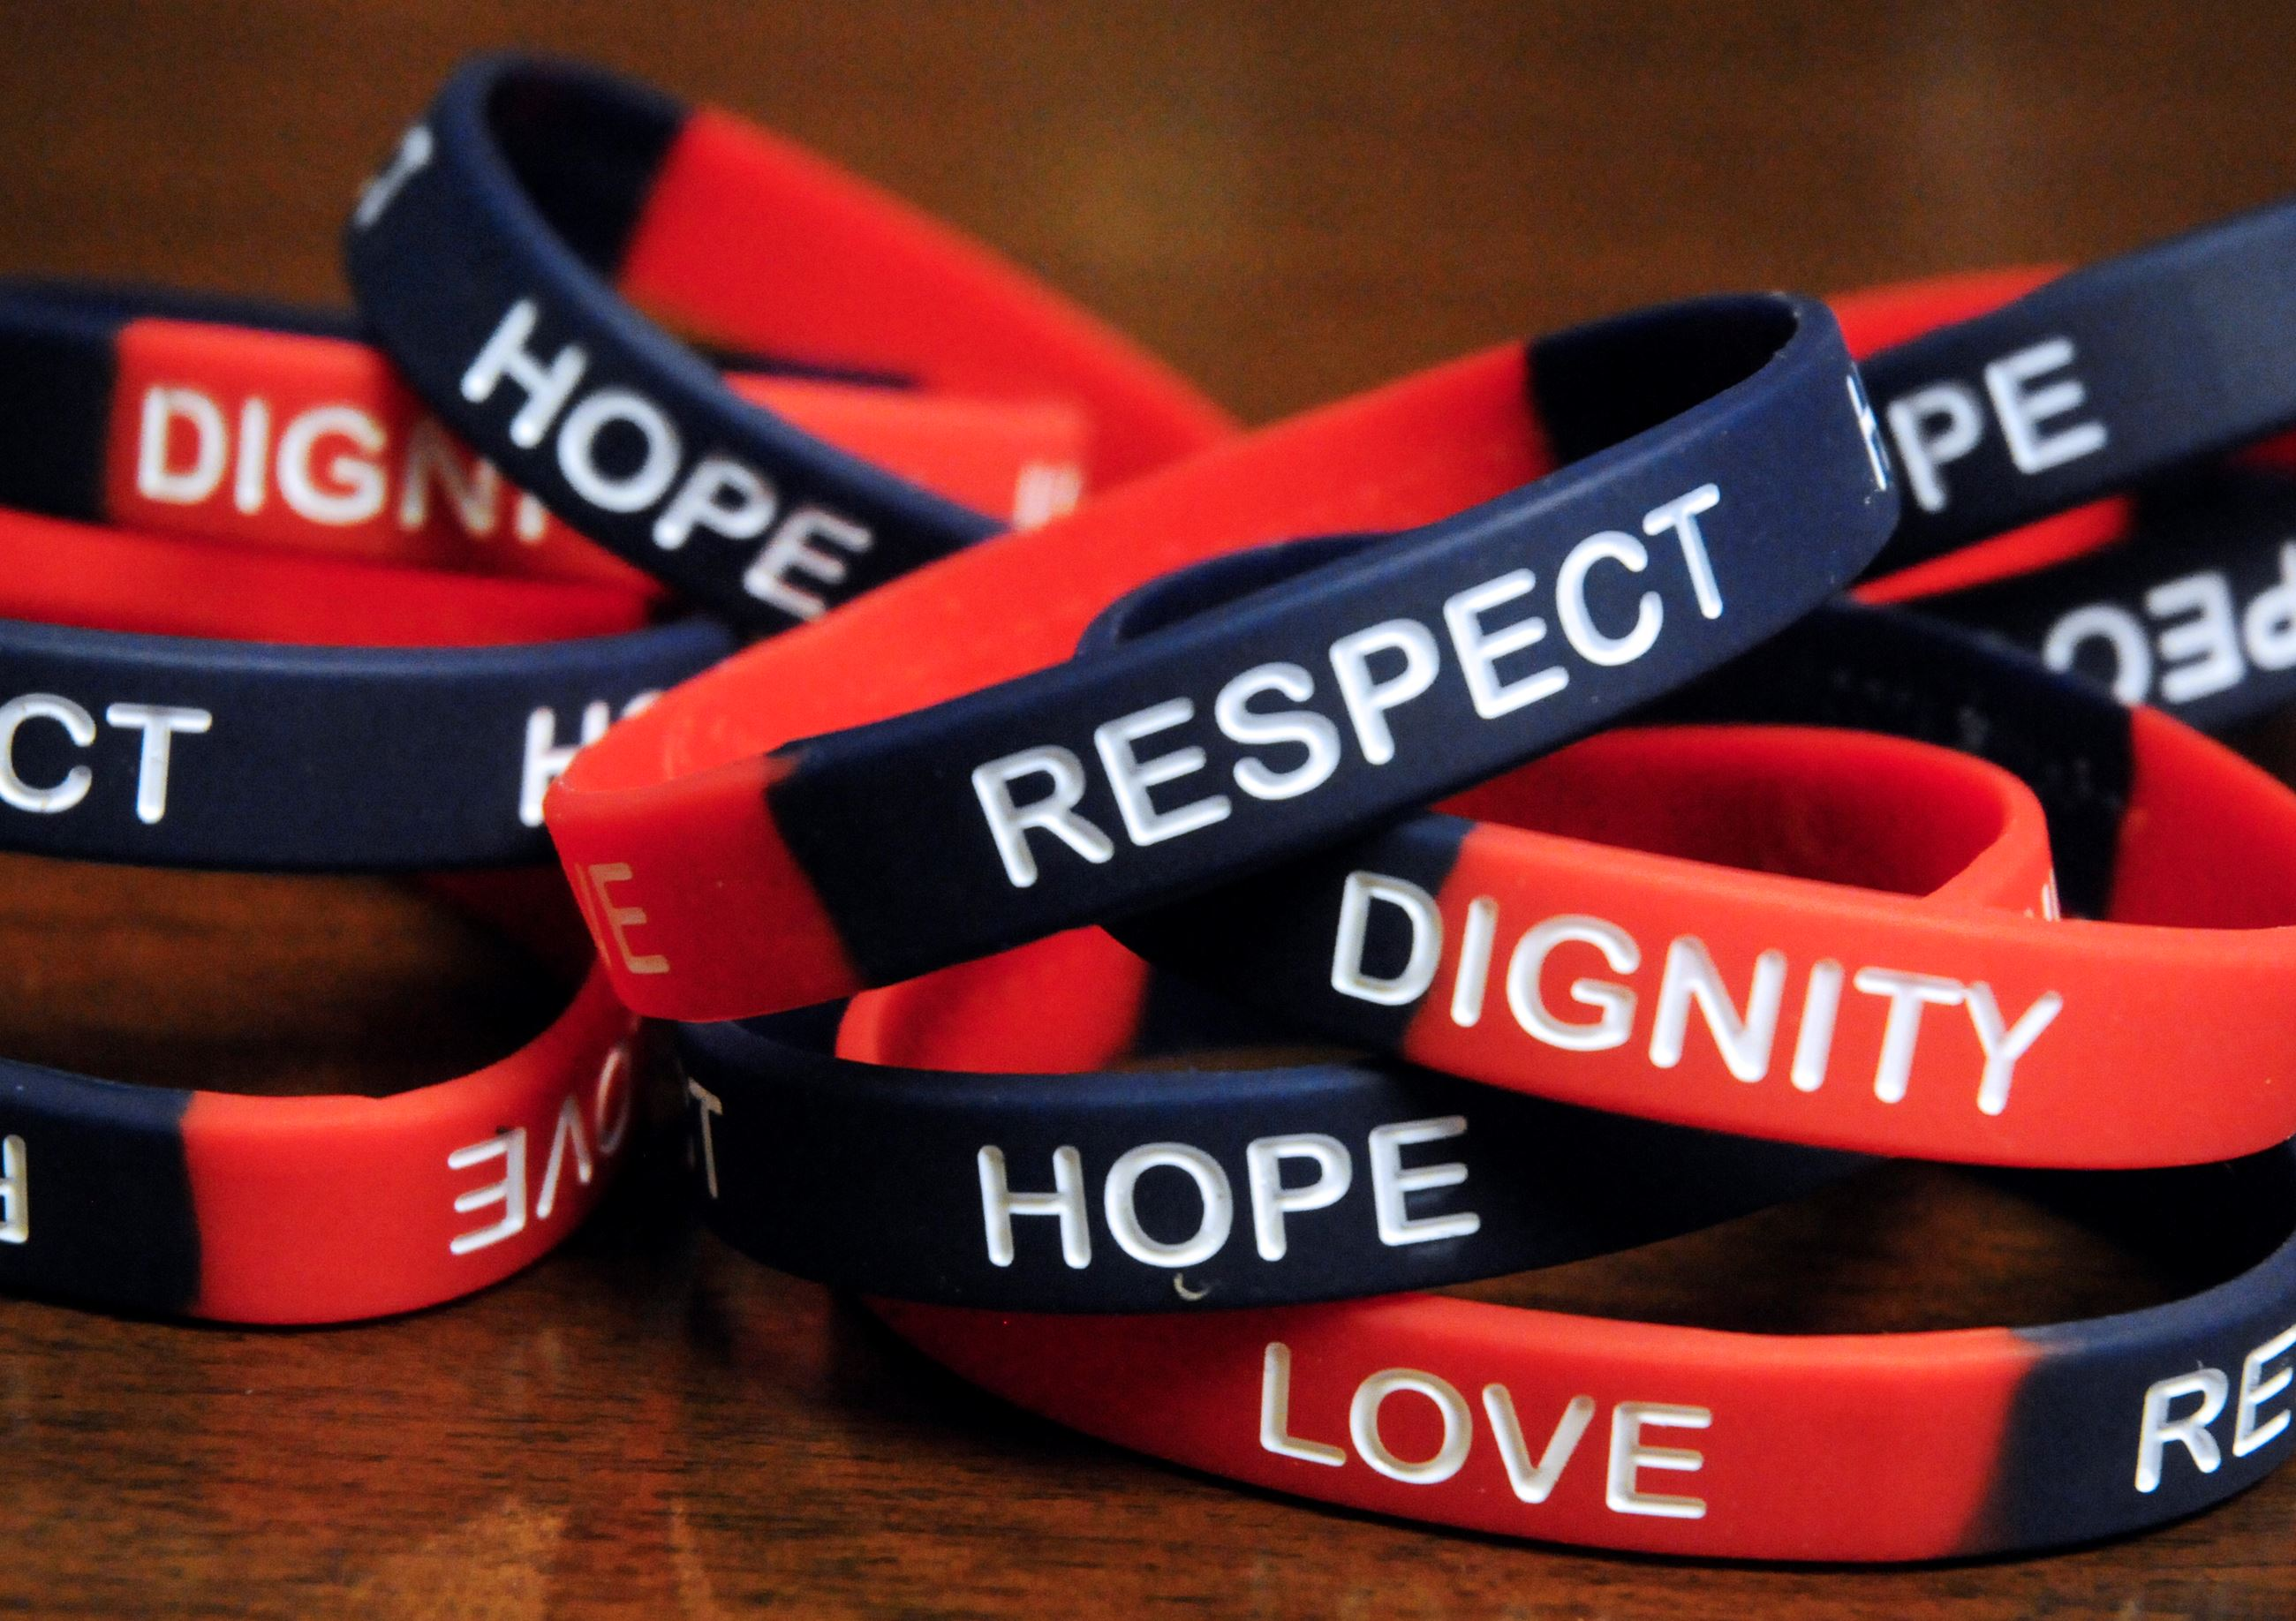 Message committee bracelets that say respect, hope, dignity, and love